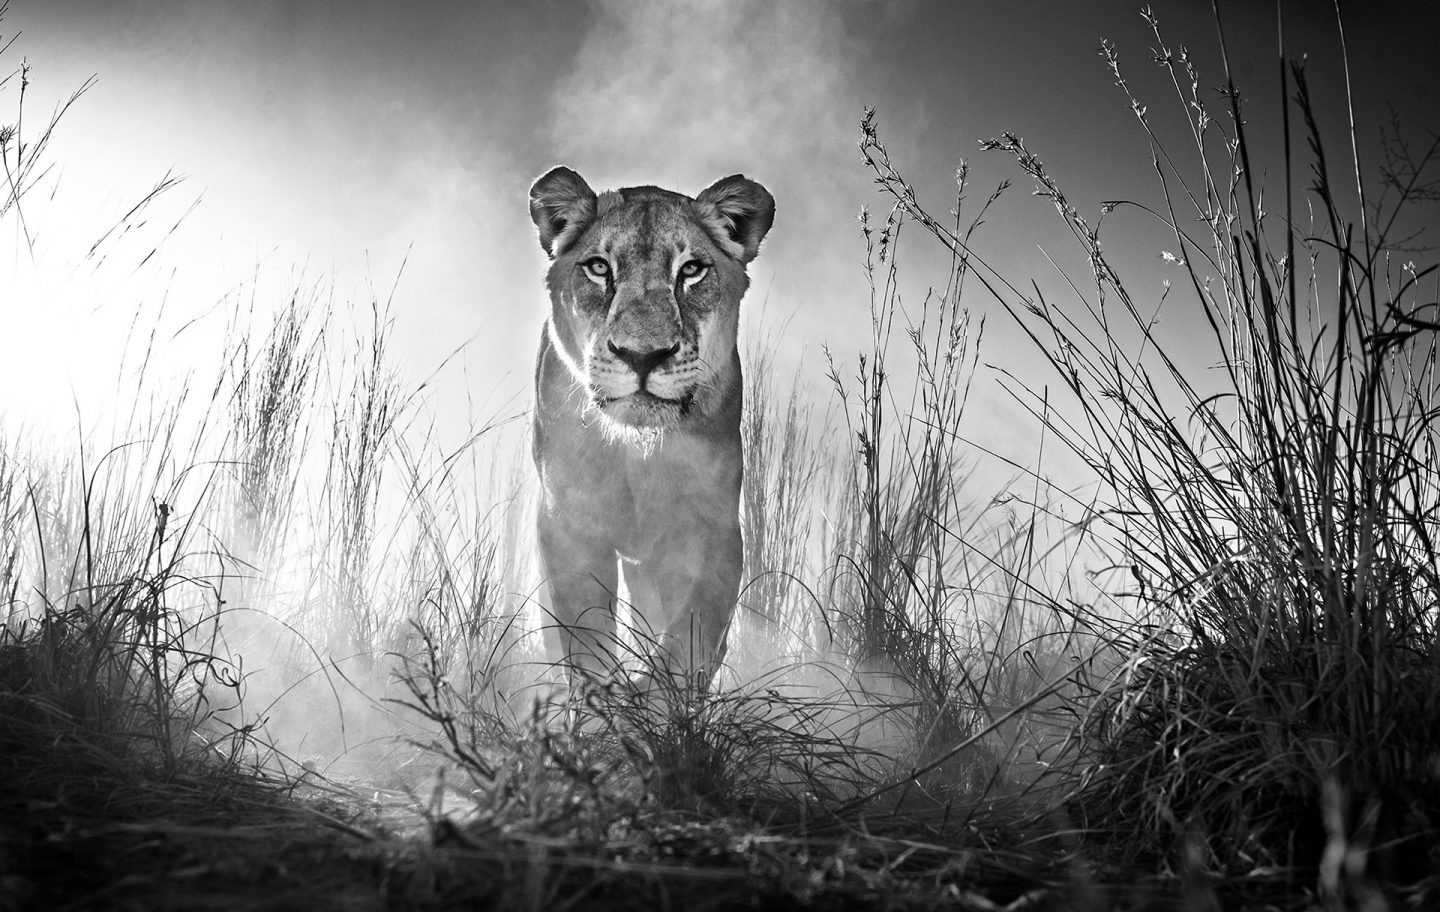 Gladiator © David Yarrow